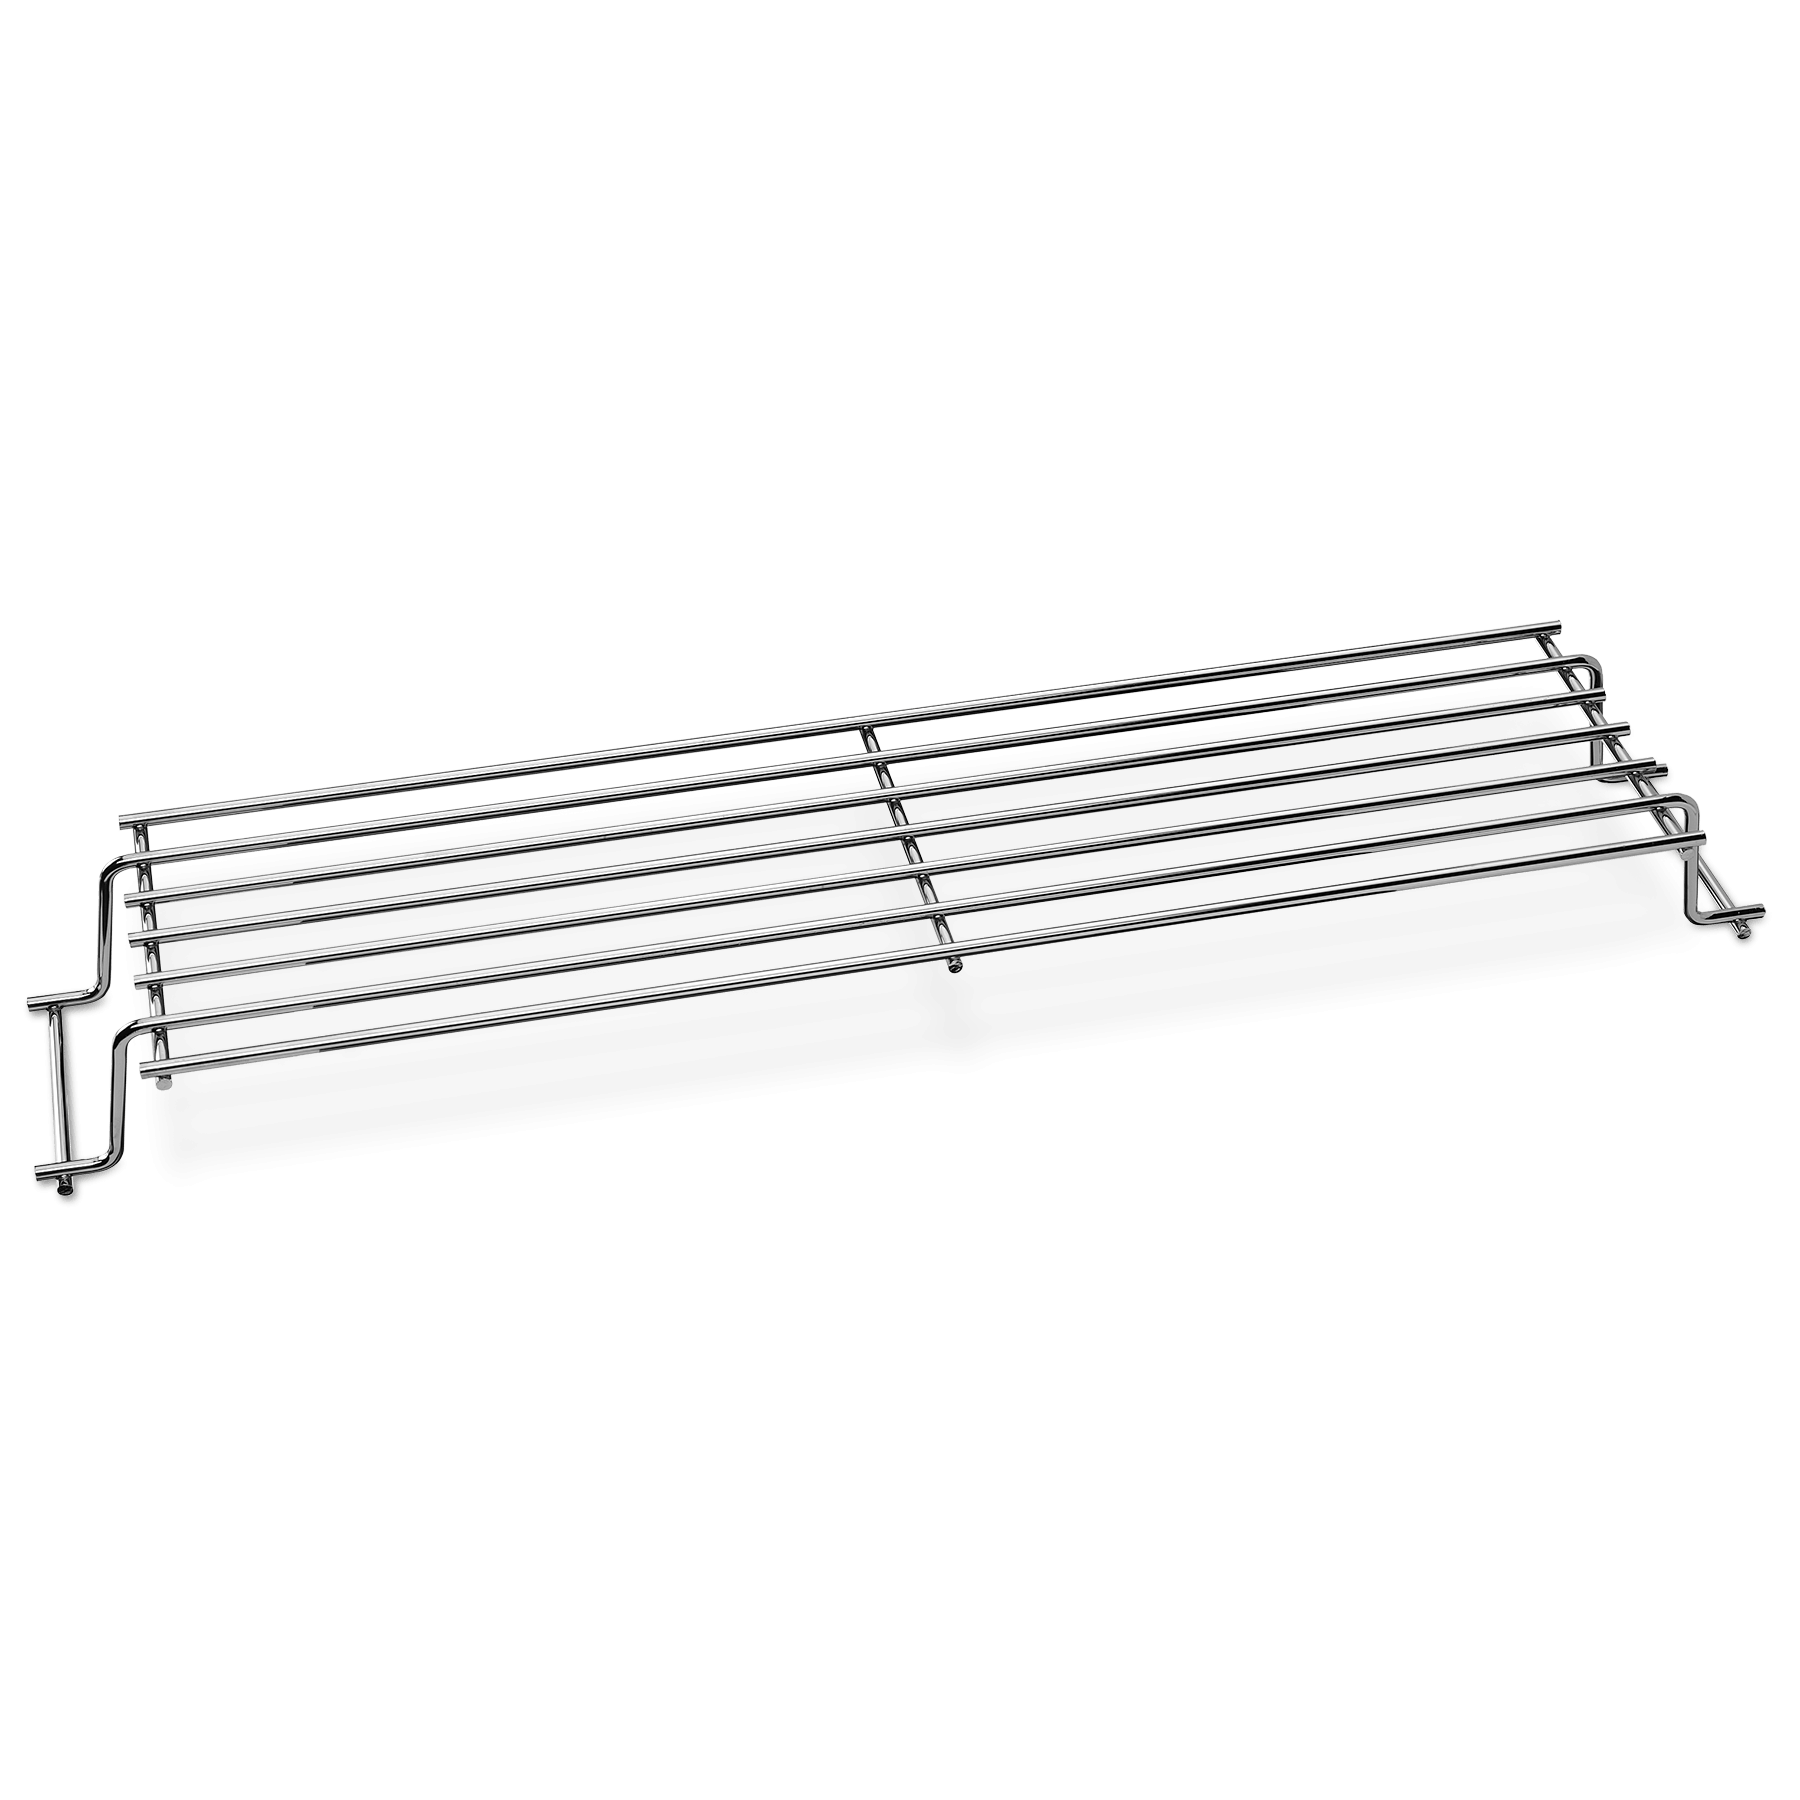 Weber 6570 Q Warming Rack for 3000 Series Portable Gas Grills New